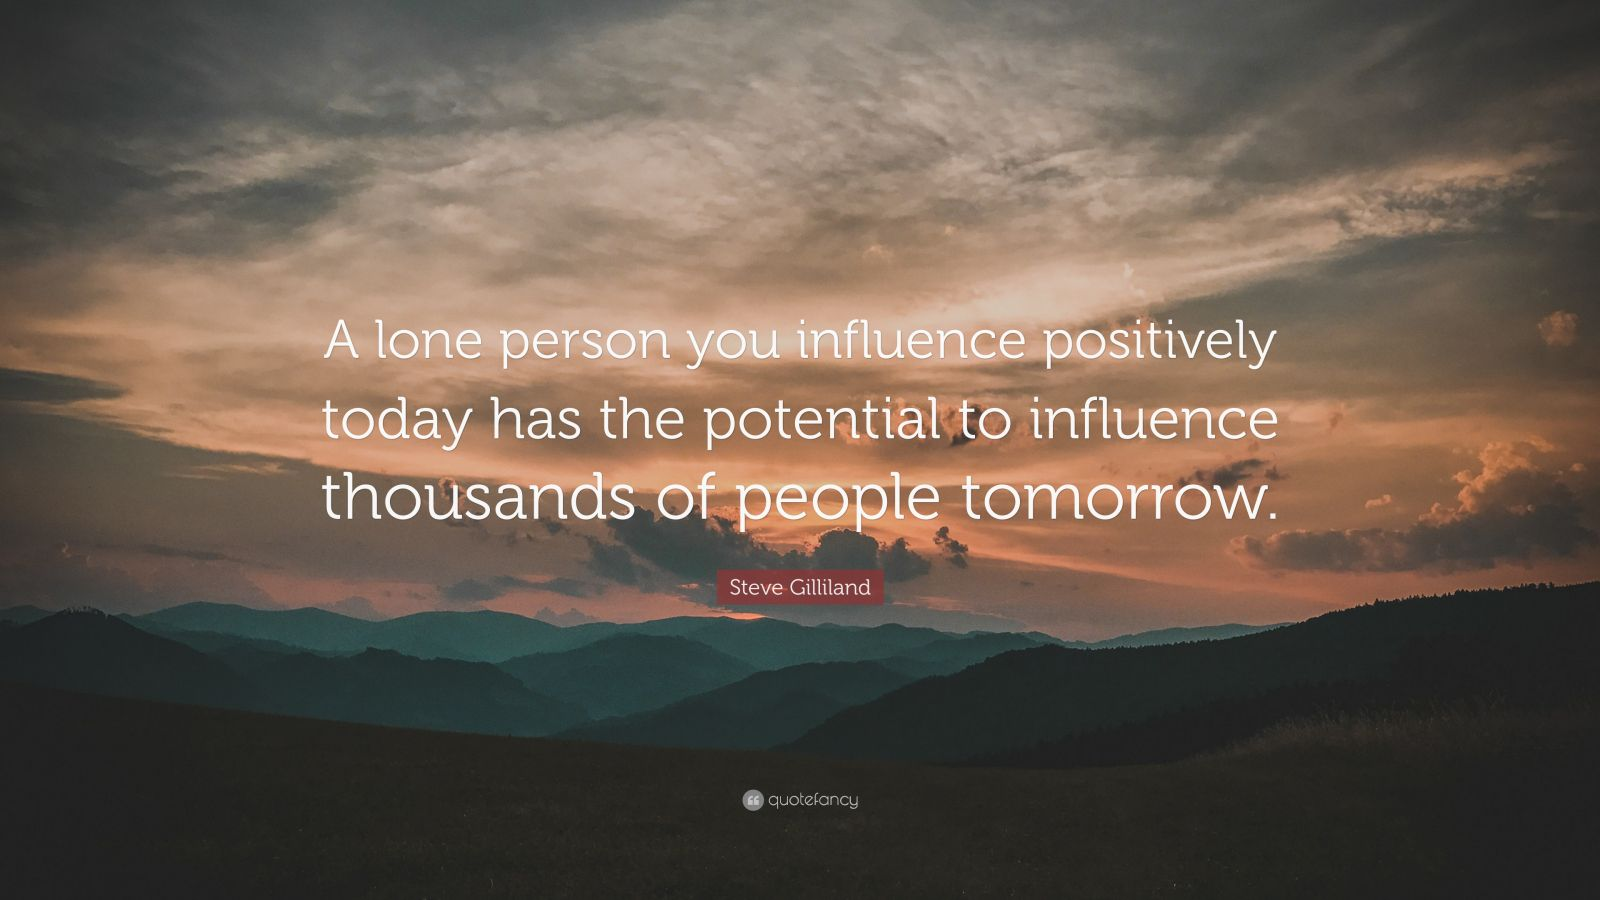 """Steve Gilliland Quote: """"A lone person you influence positively today has the potential to influence thousands of people tomorrow."""""""